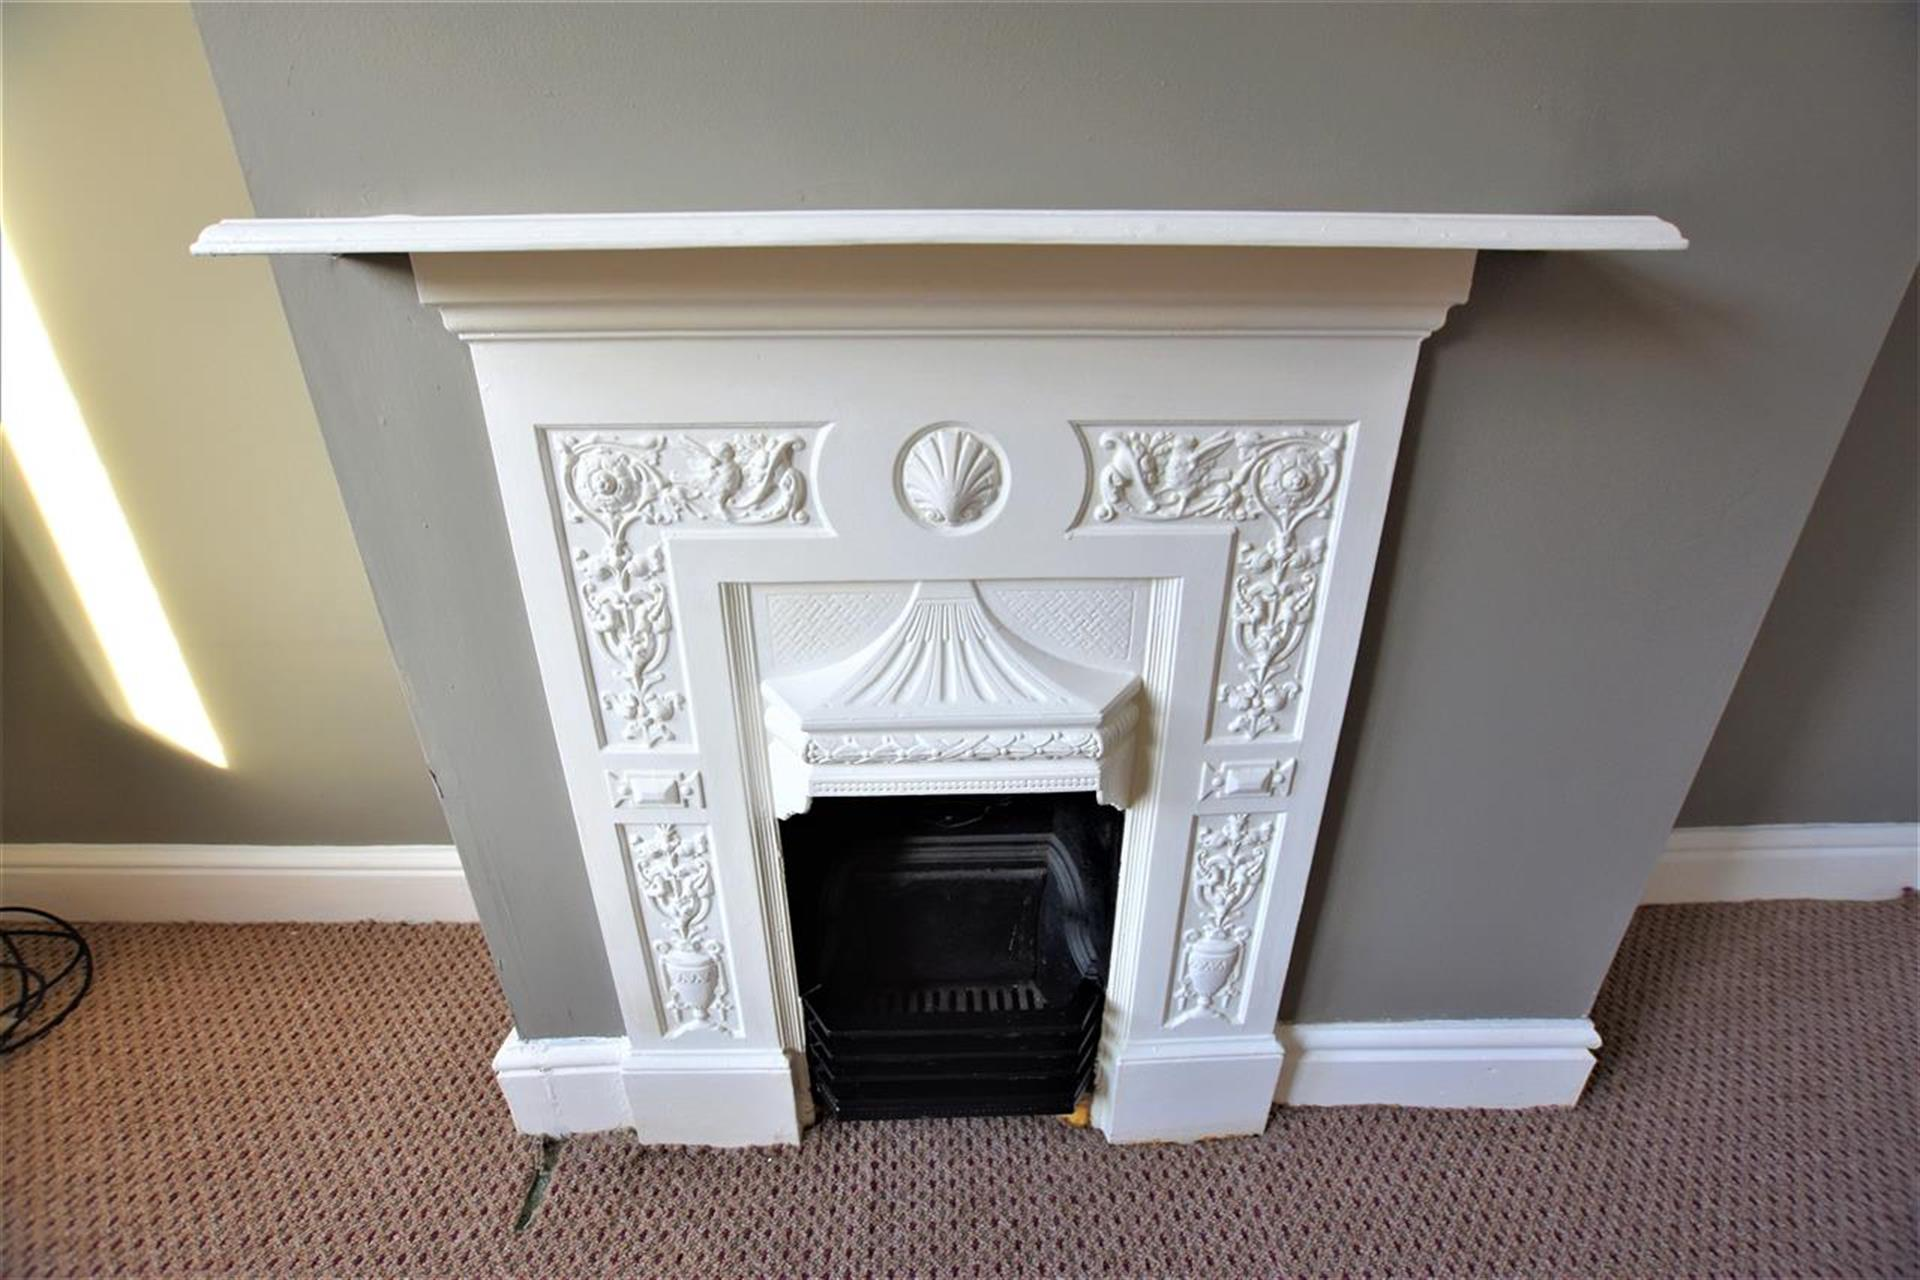 2 Bedroom End Terraced House For Sale - Original Fireplace